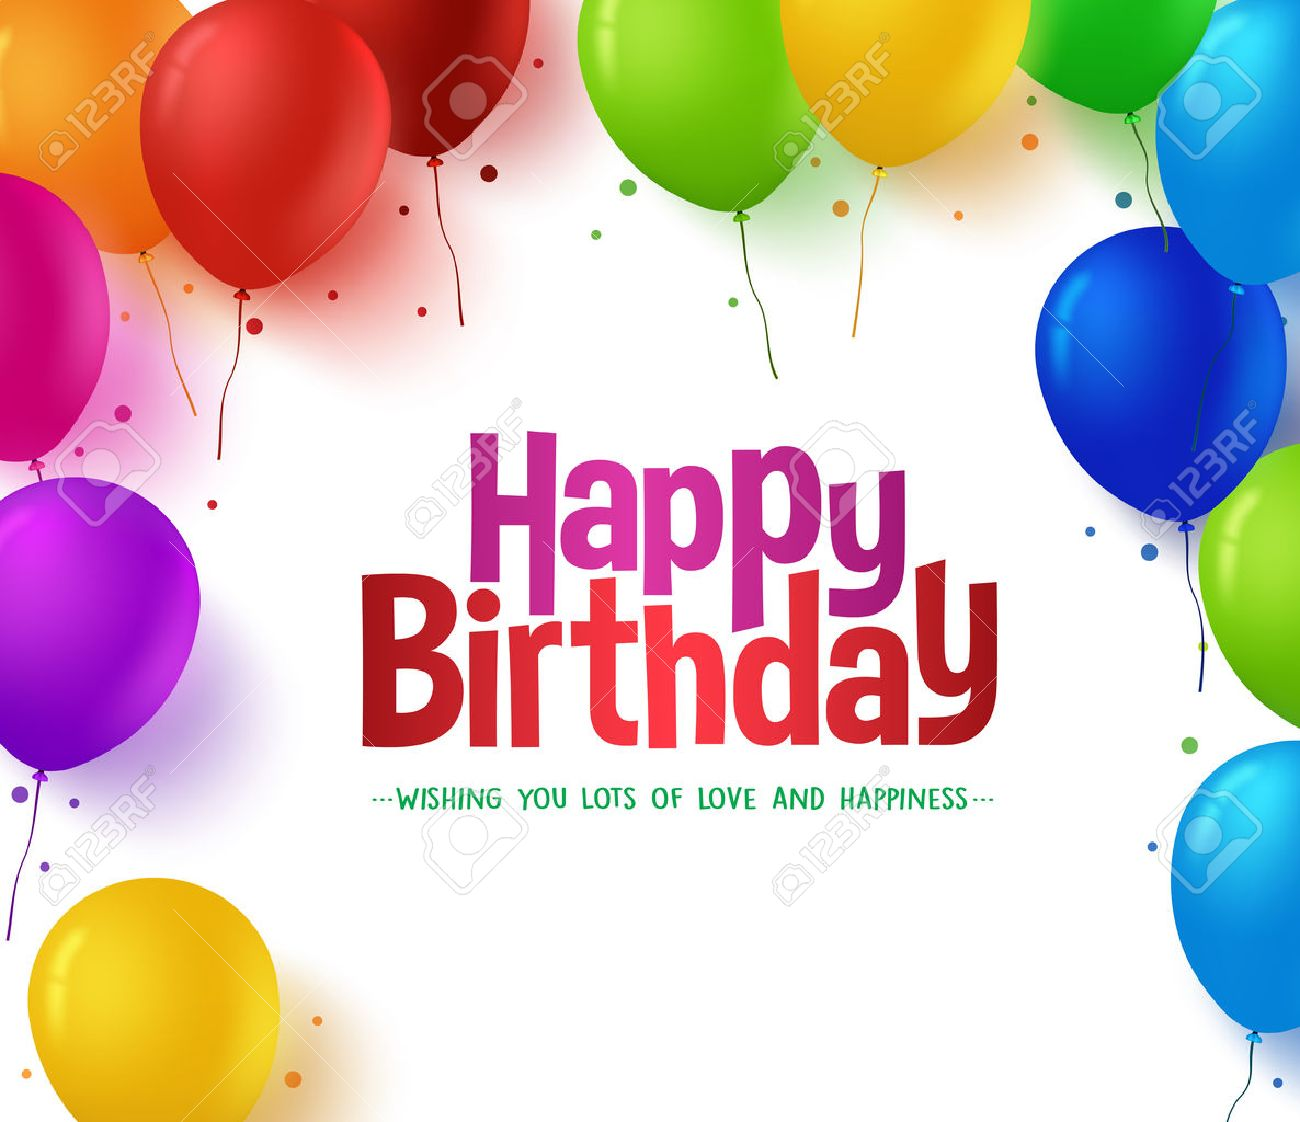 3d Realistic Colorful Bunch of Happy Birthday Balloons Background for Party and Celebrations With Space for Text Isolated in White. Vector Illustration - 48167513